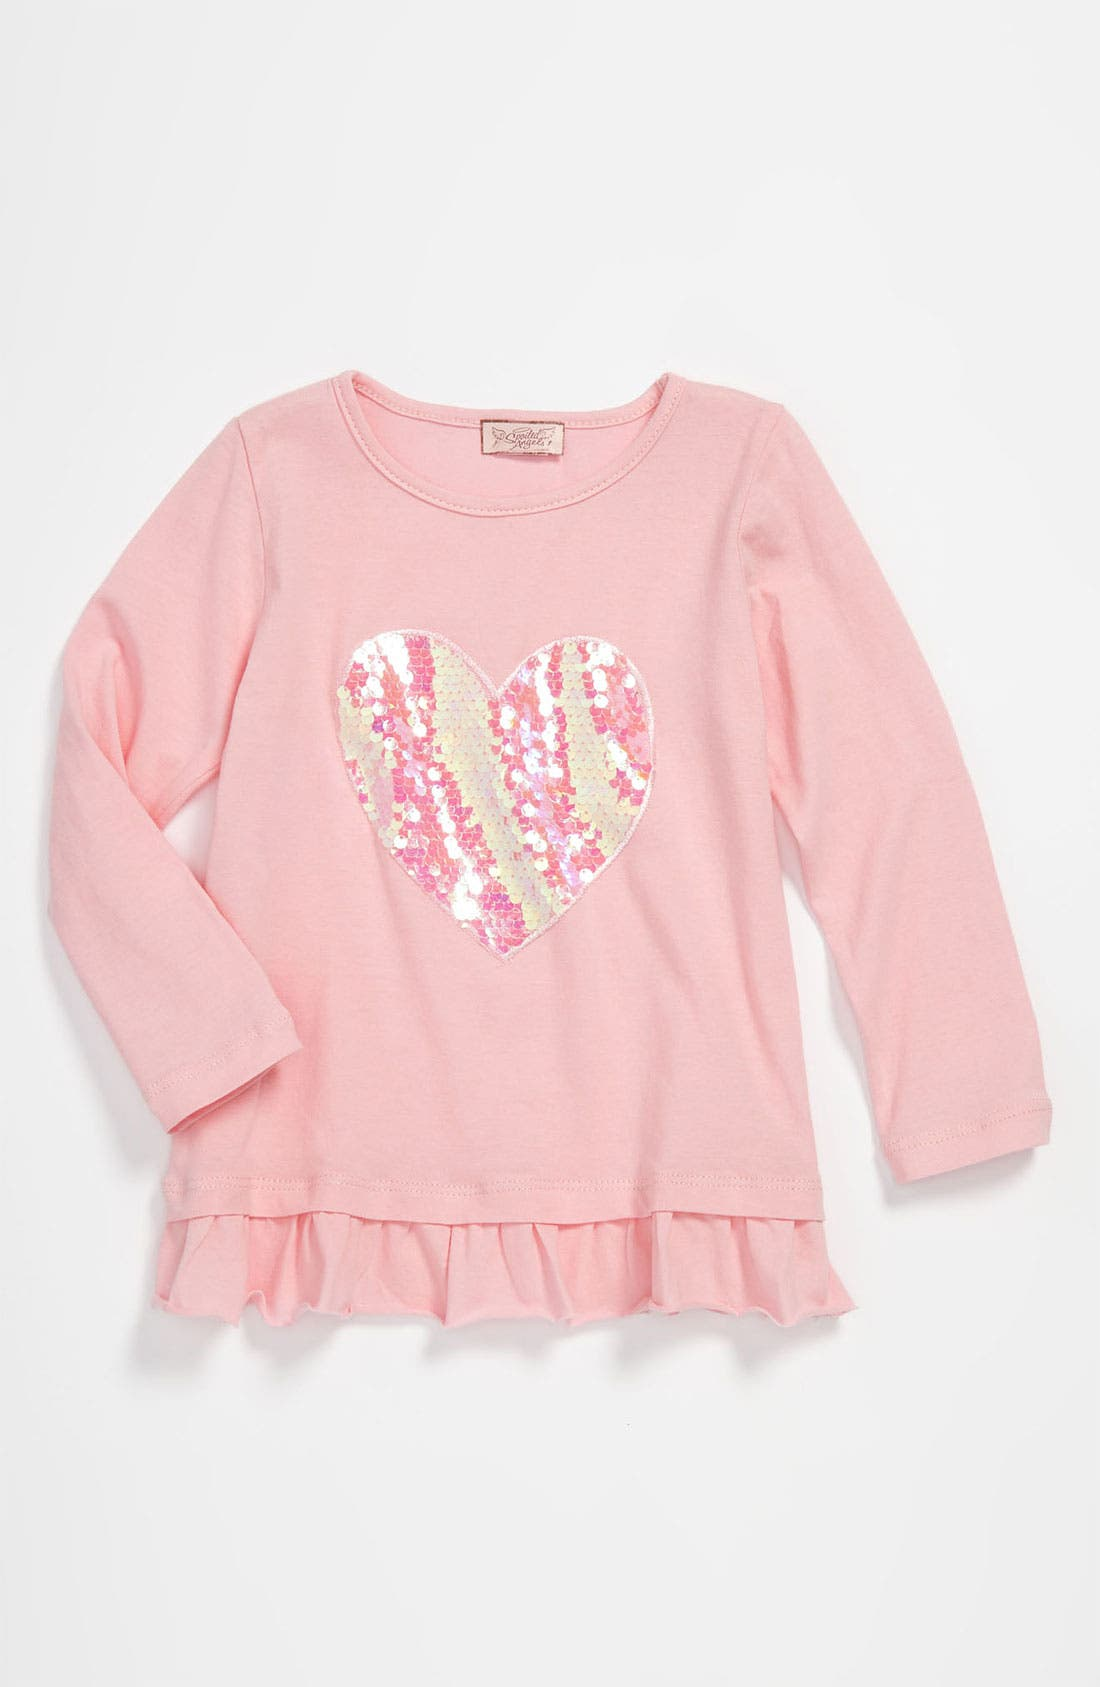 Alternate Image 1 Selected - Spoiled Angels Paillette Heart Top (Toddler)